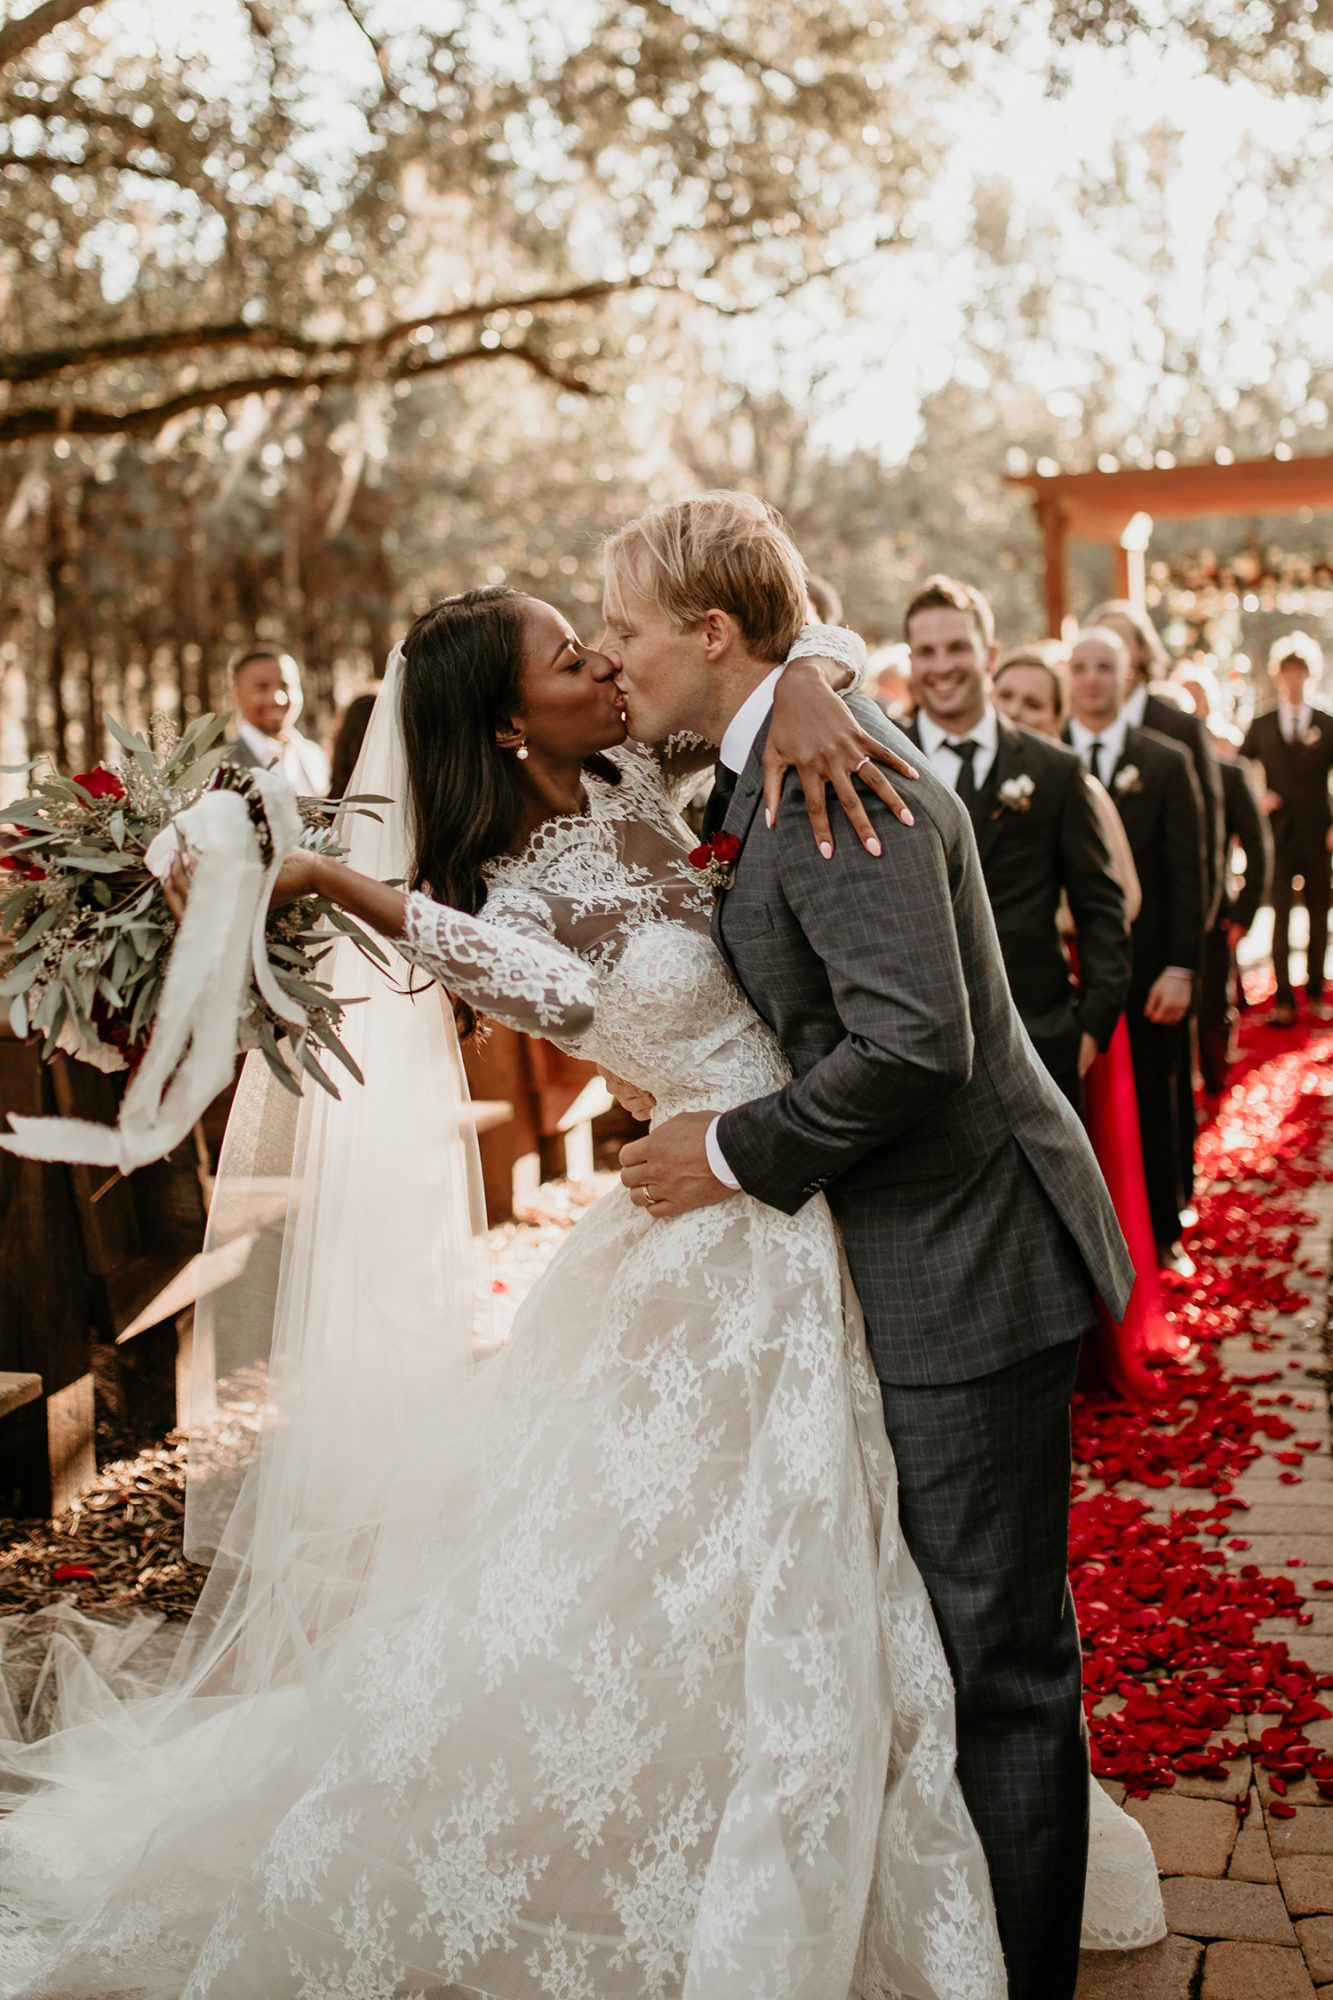 aerielle dyan wedding kiss